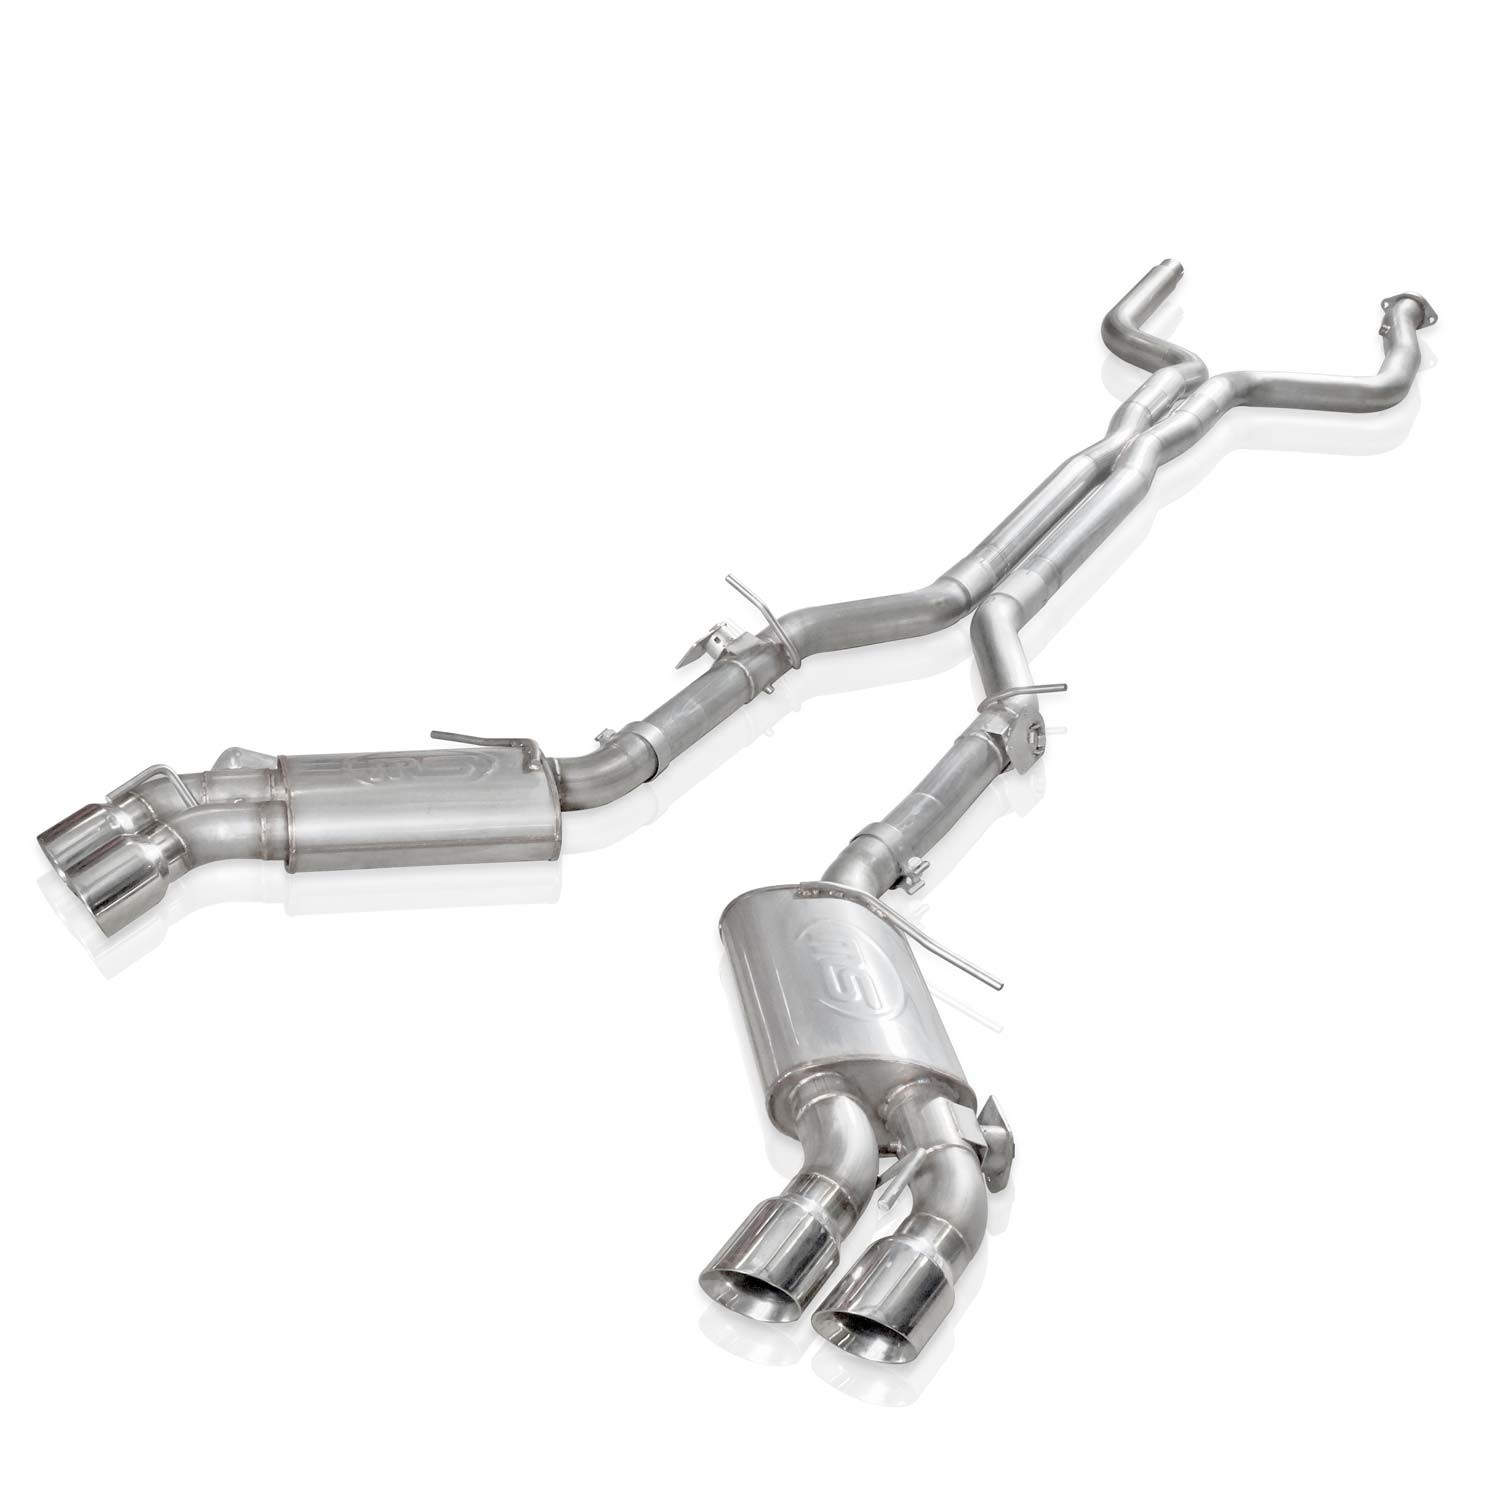 stainless works 2016 2018 camaro ss exhaust 3in x pipe afm valves npp replacement valves 4in quad tips ca16avcb